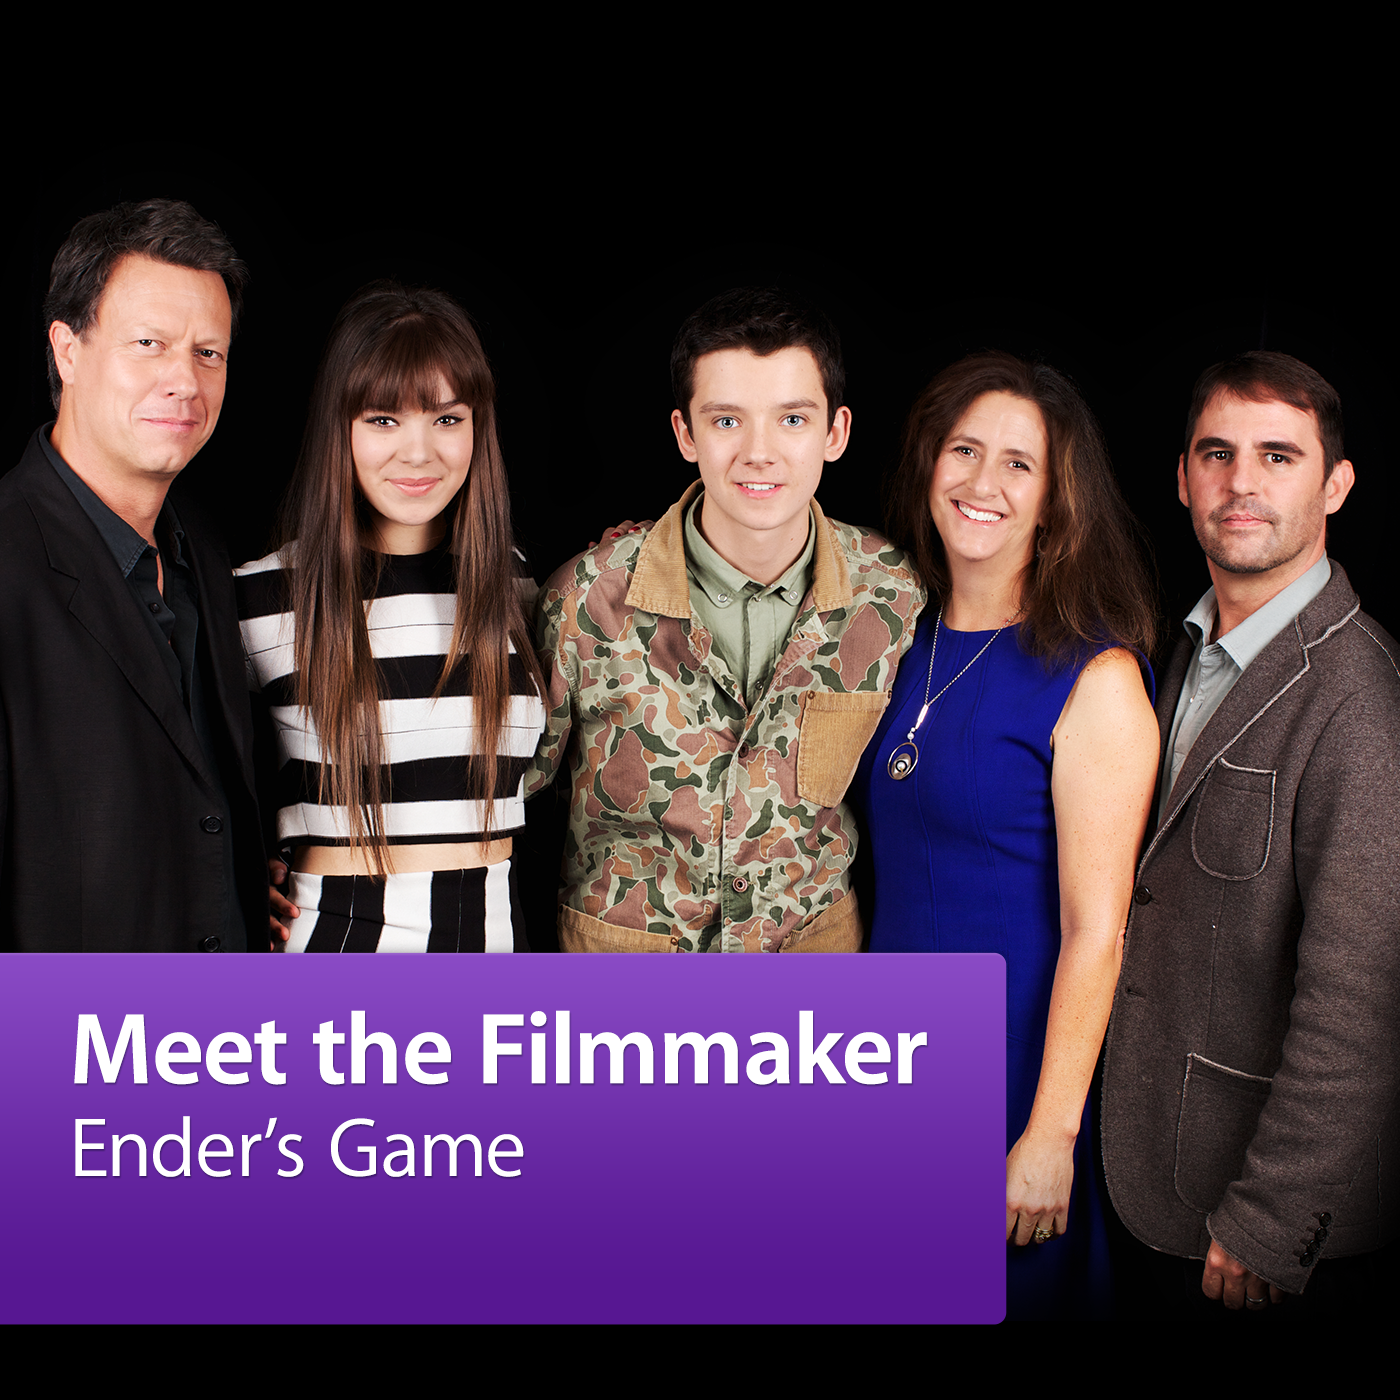 Ender's Game: Meet the Filmmaker